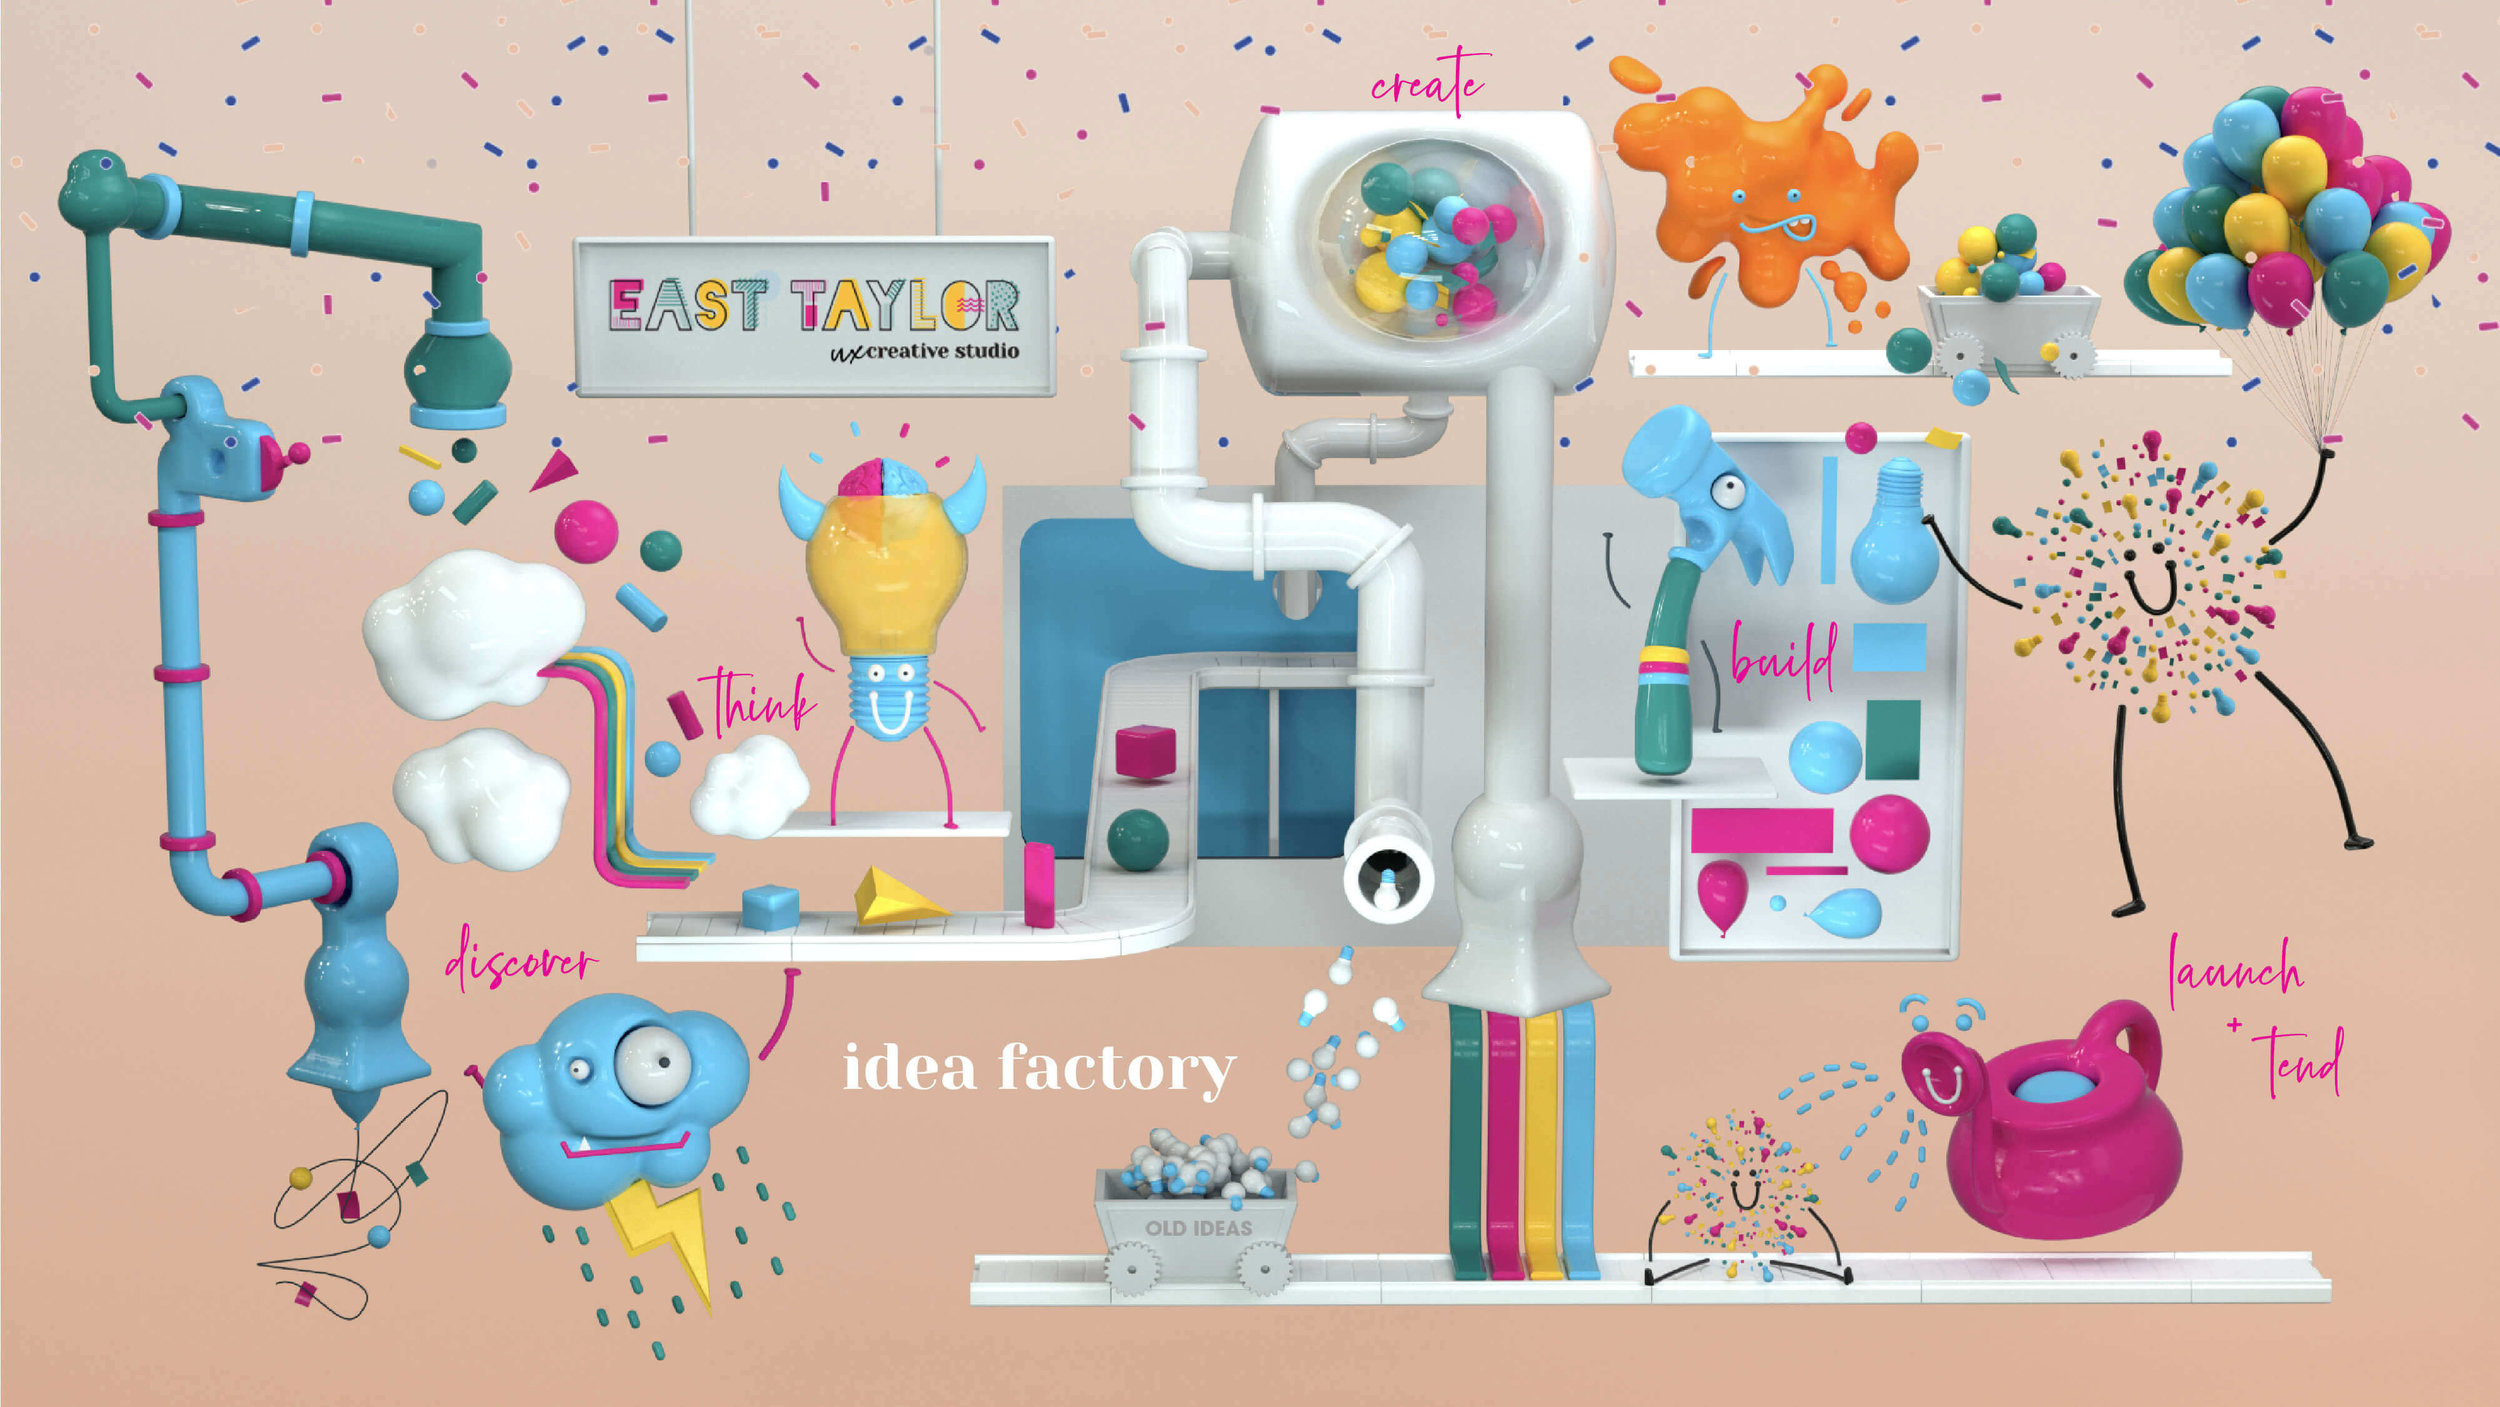 East Taylor Creative_Idea Factory_Design Process.jpg